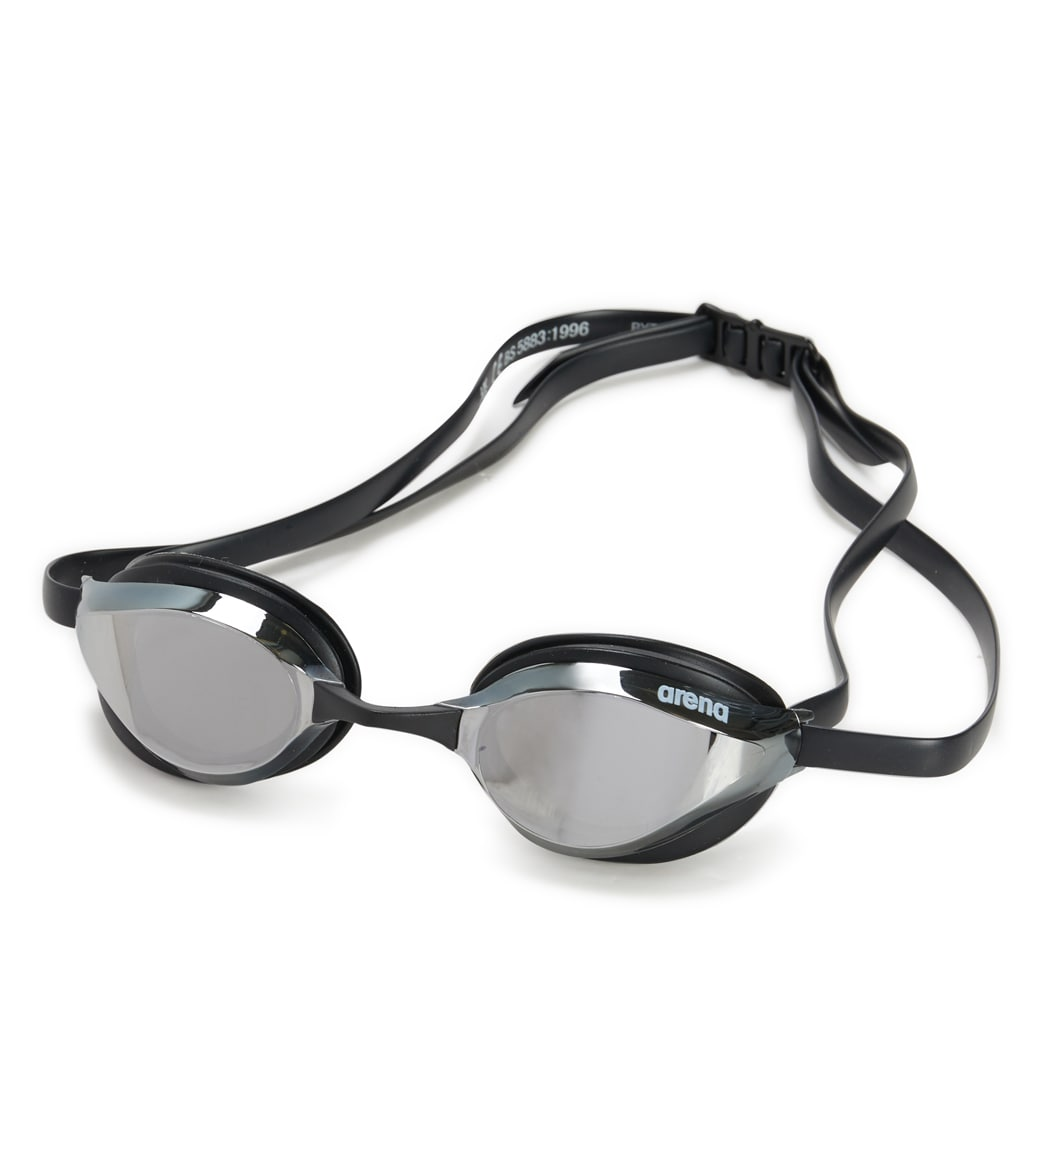 1ac2a82415 Arena Swim Goggles at SwimOutlet.com